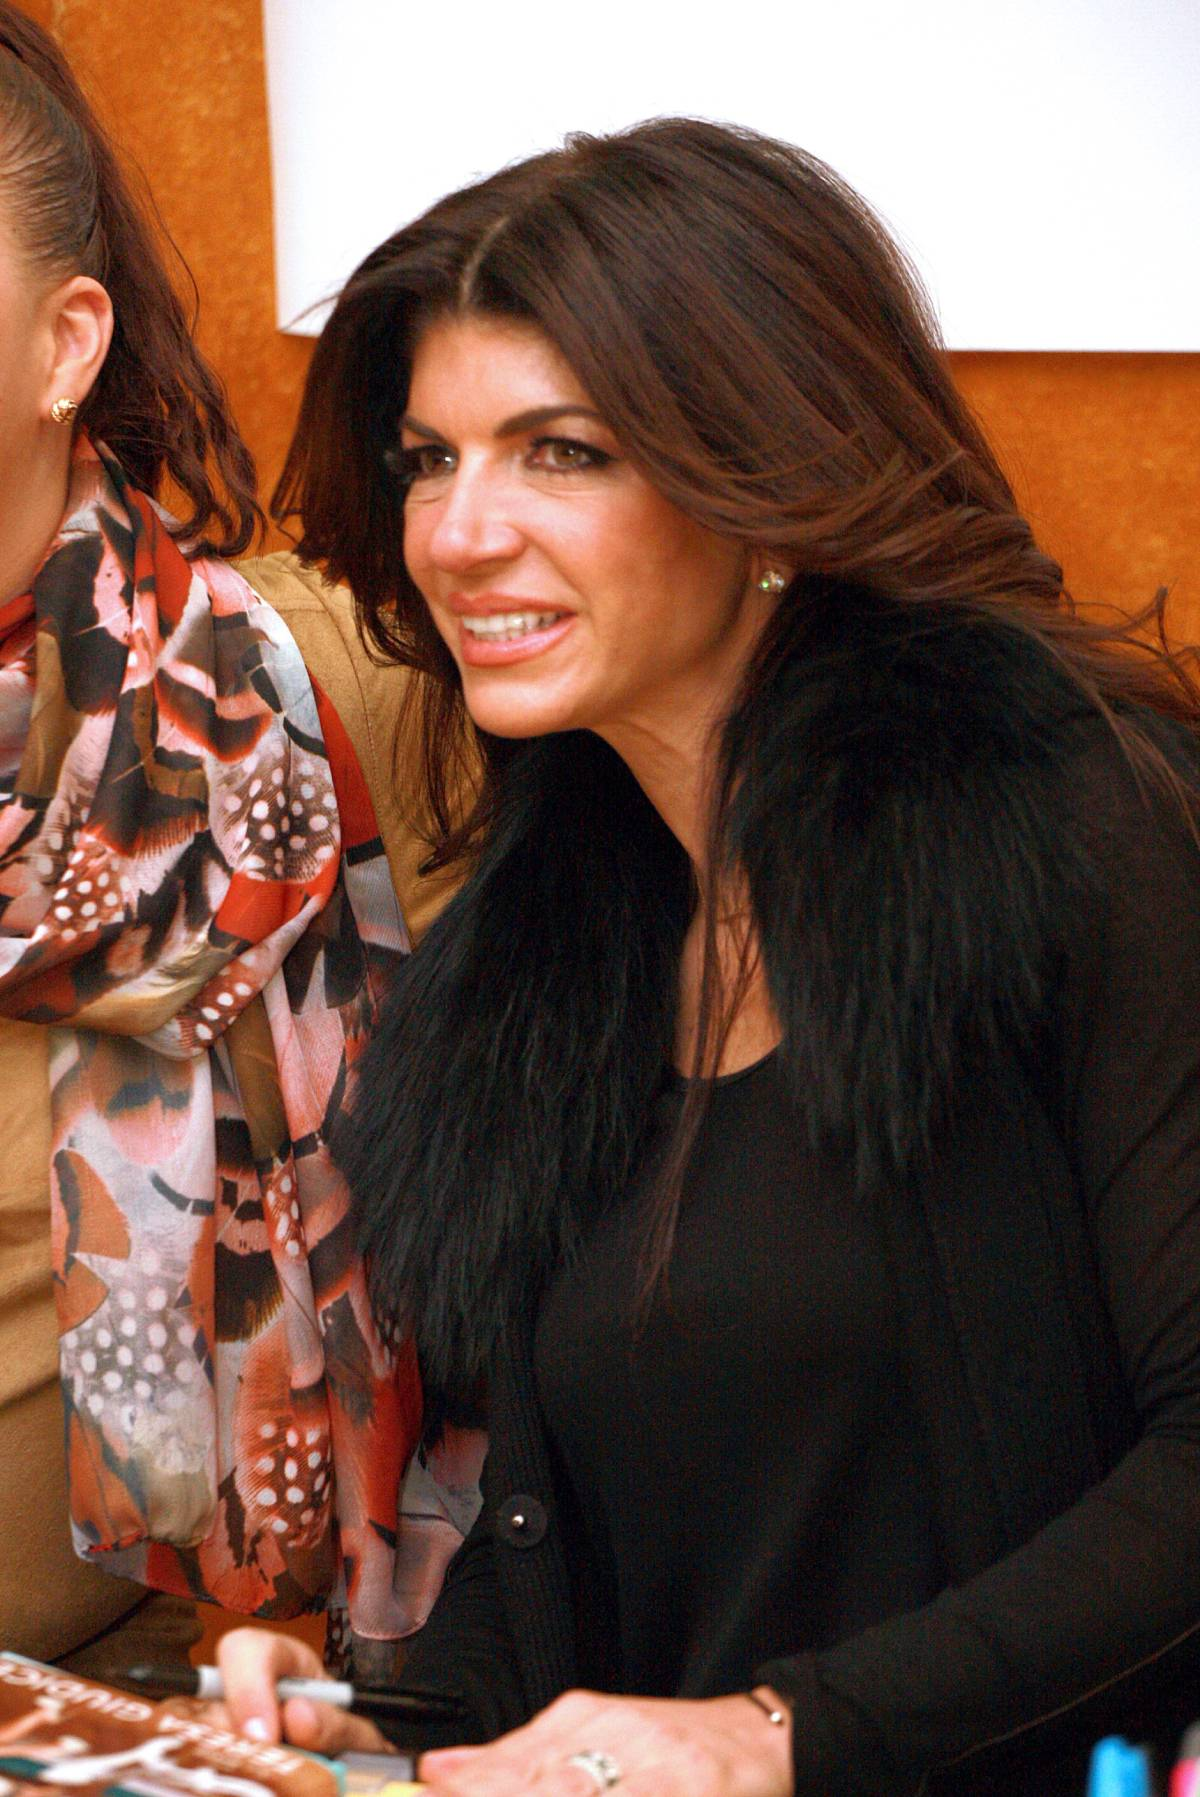 Teresa Giudice at a book signing for her memoir Turning the Tables: From Housewife to Inmate and Back Again.